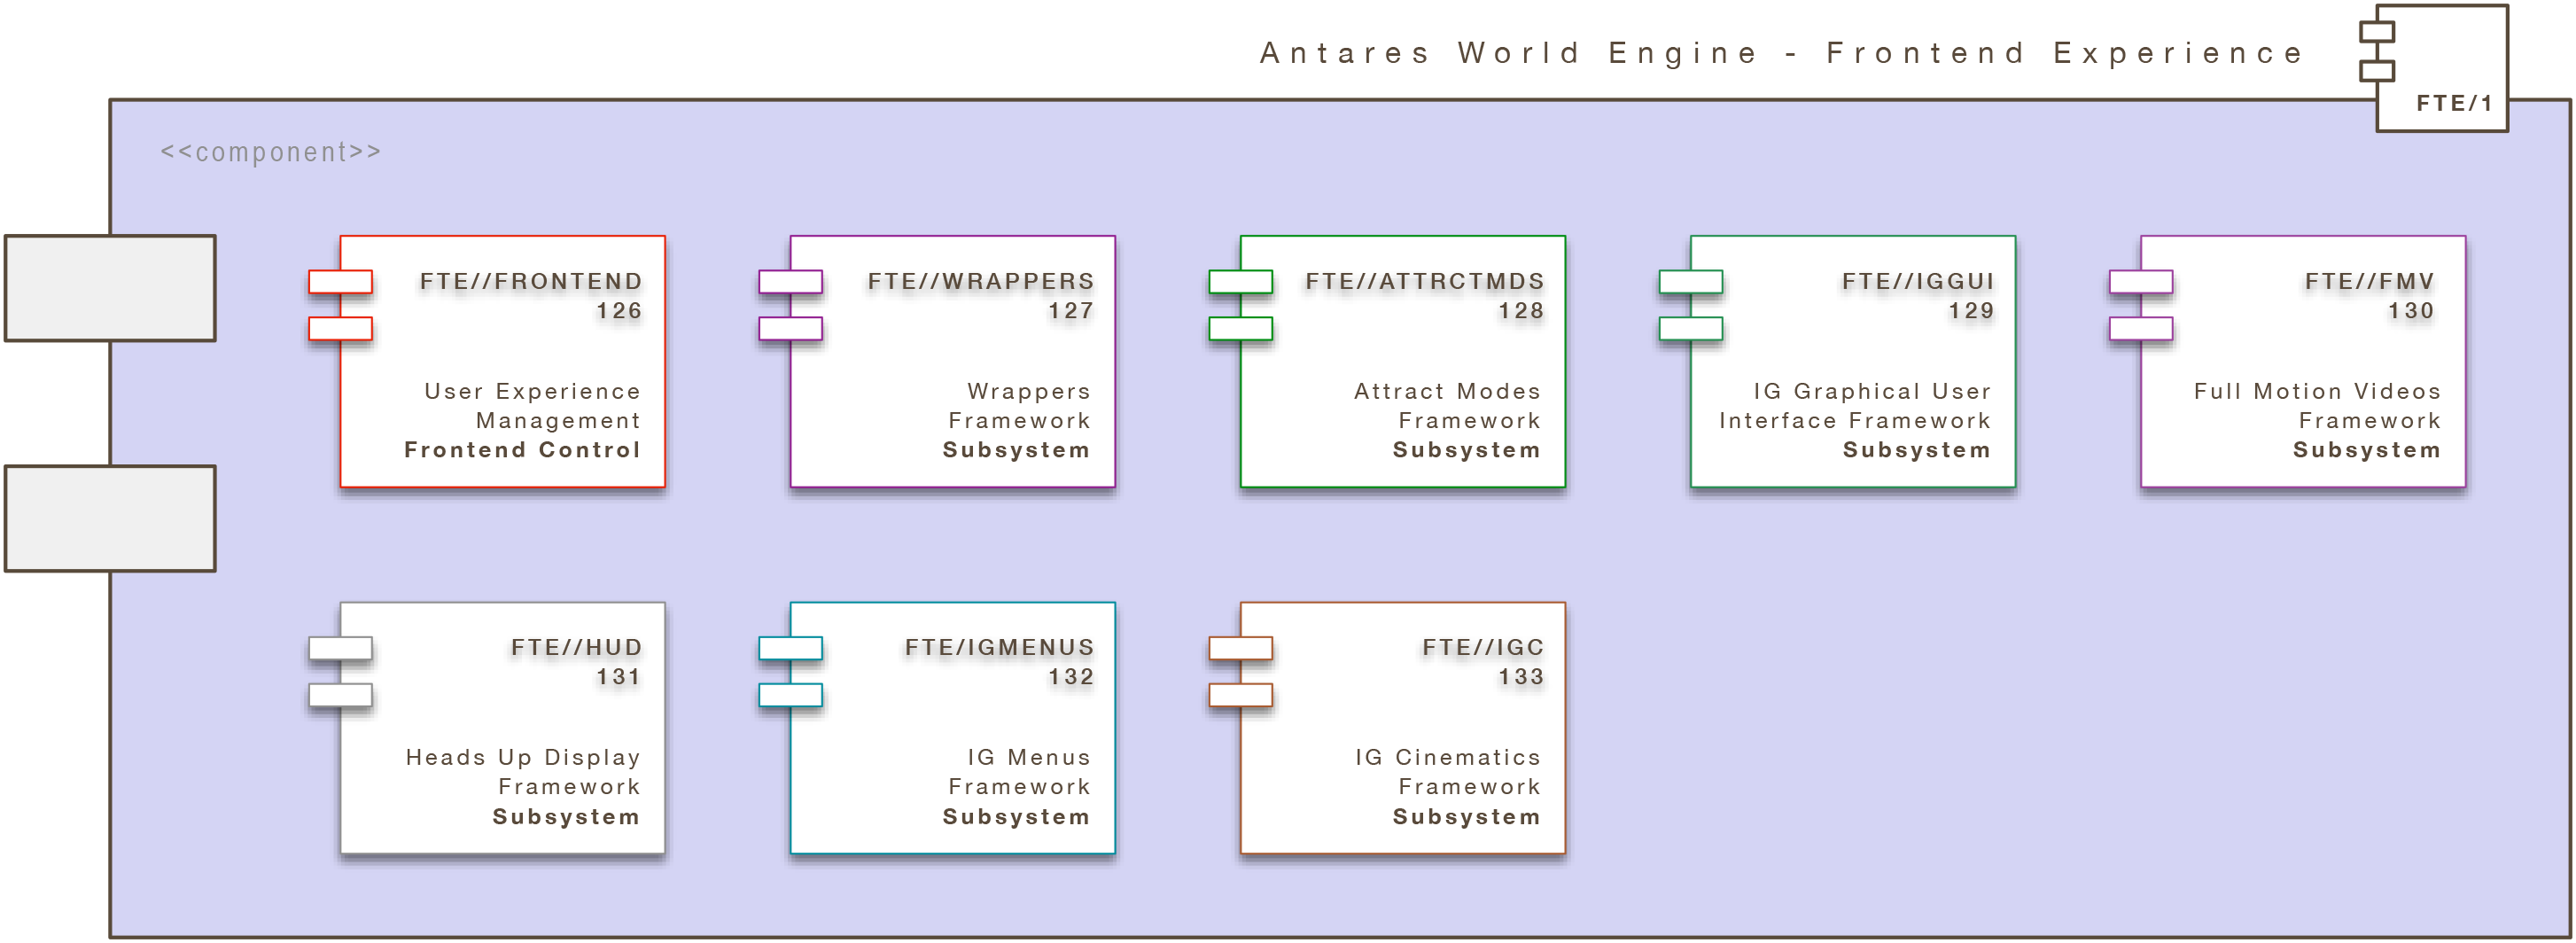 Antares World Engine (Core): Frontend Experience (AWE/FTE)